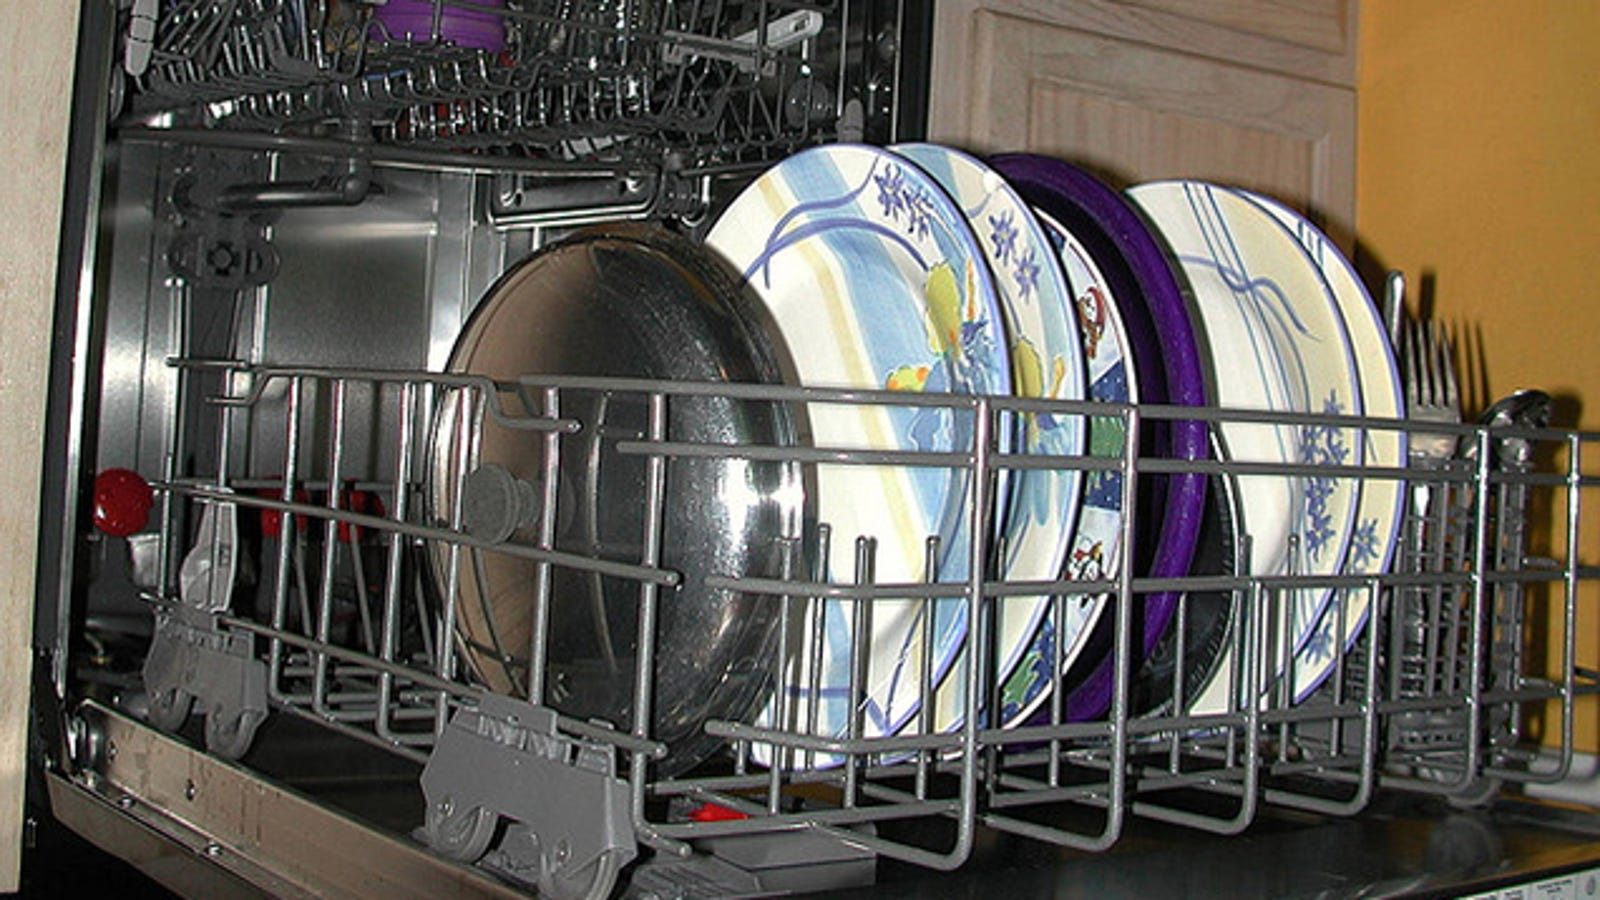 stop hand-washing: newer dishwashers save more water than you can